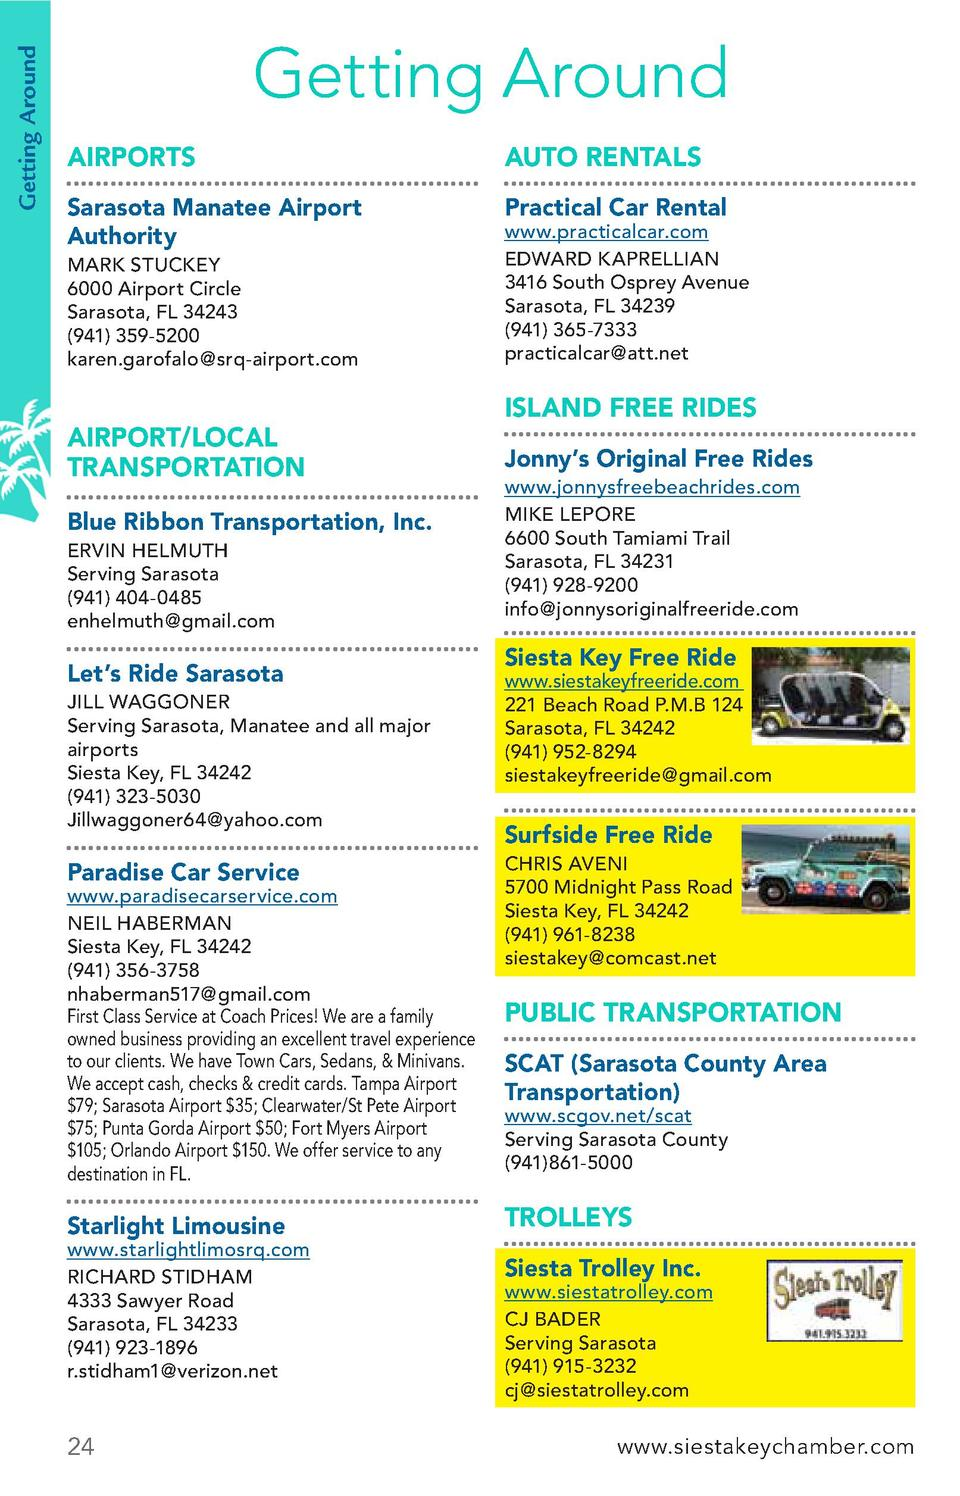 Getting Around  Getting Around AIRPORTS  AUTO RENTALS  Sarasota Manatee Airport Authority  Practical Car Rental  MARK STUC...